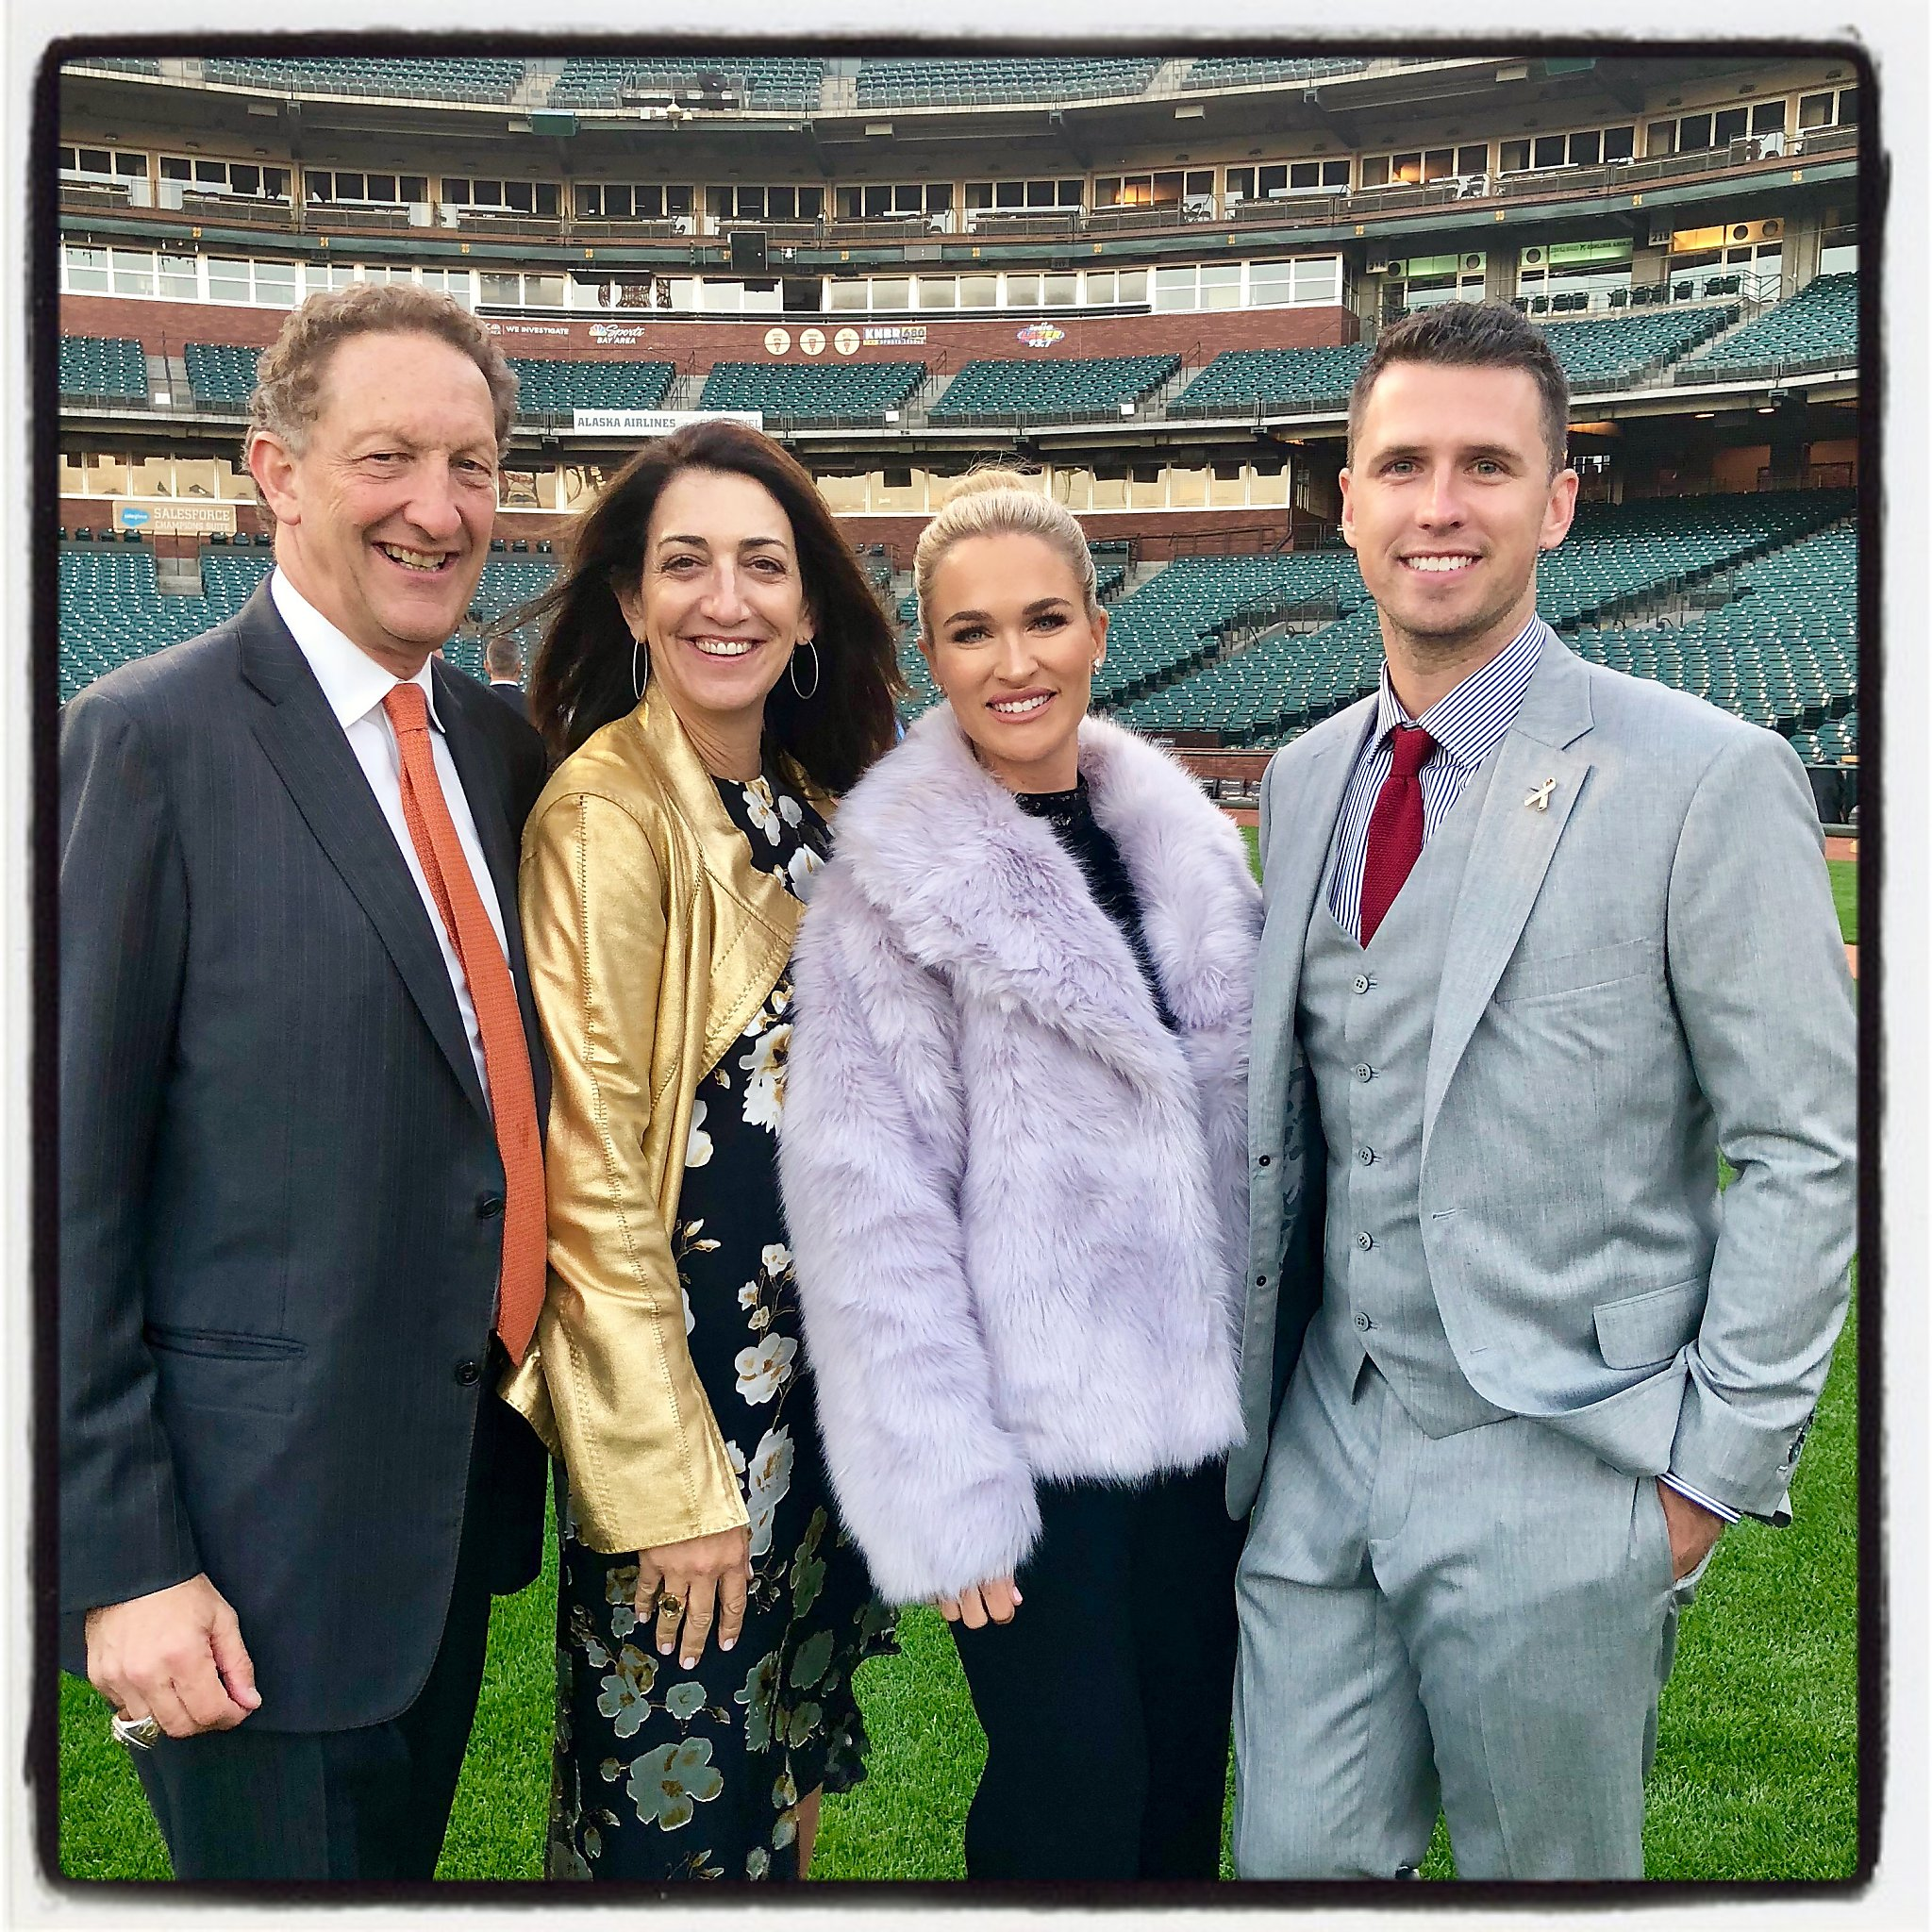 Buster and Kristen Posey raise $700K at gala to battle pediatric